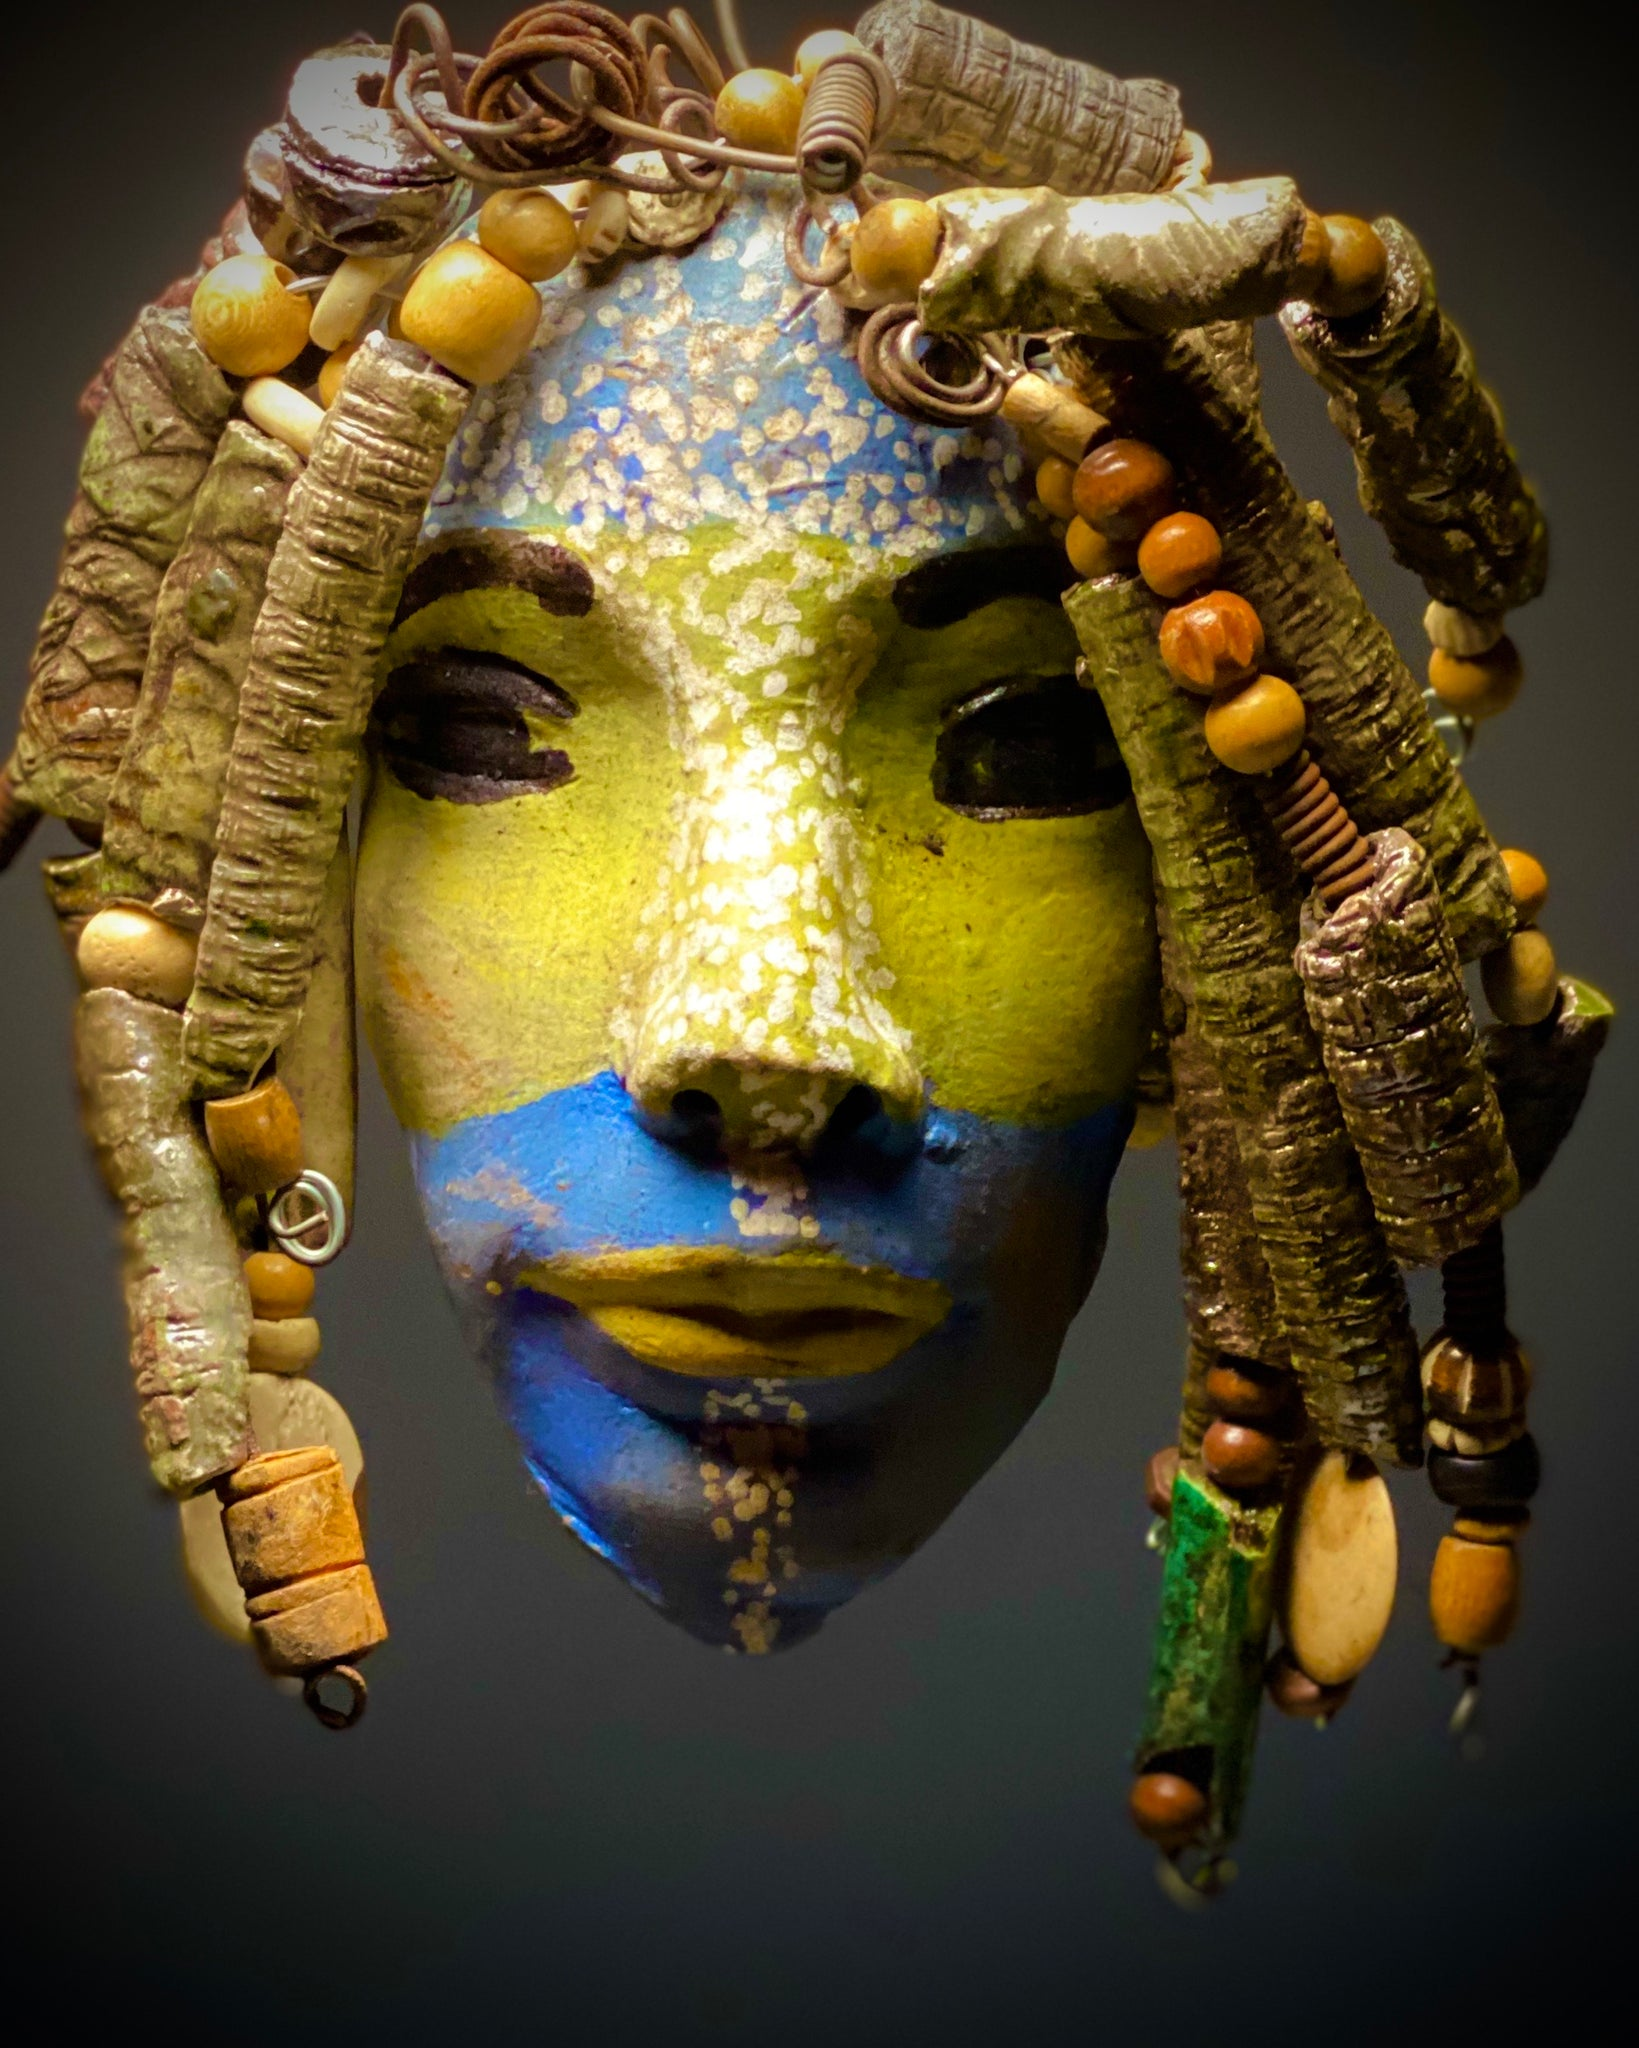 "Peggy has a two tone complexion of light blue and honey yellow. Her face is 5"" x 7"" and weighs 1.8 lbs. Peggy has over 40 handmade raku fired beads. Overall length with hair extension approx 9""x 9"". She has over 20 feet of coiled 16 gauge wire hair."